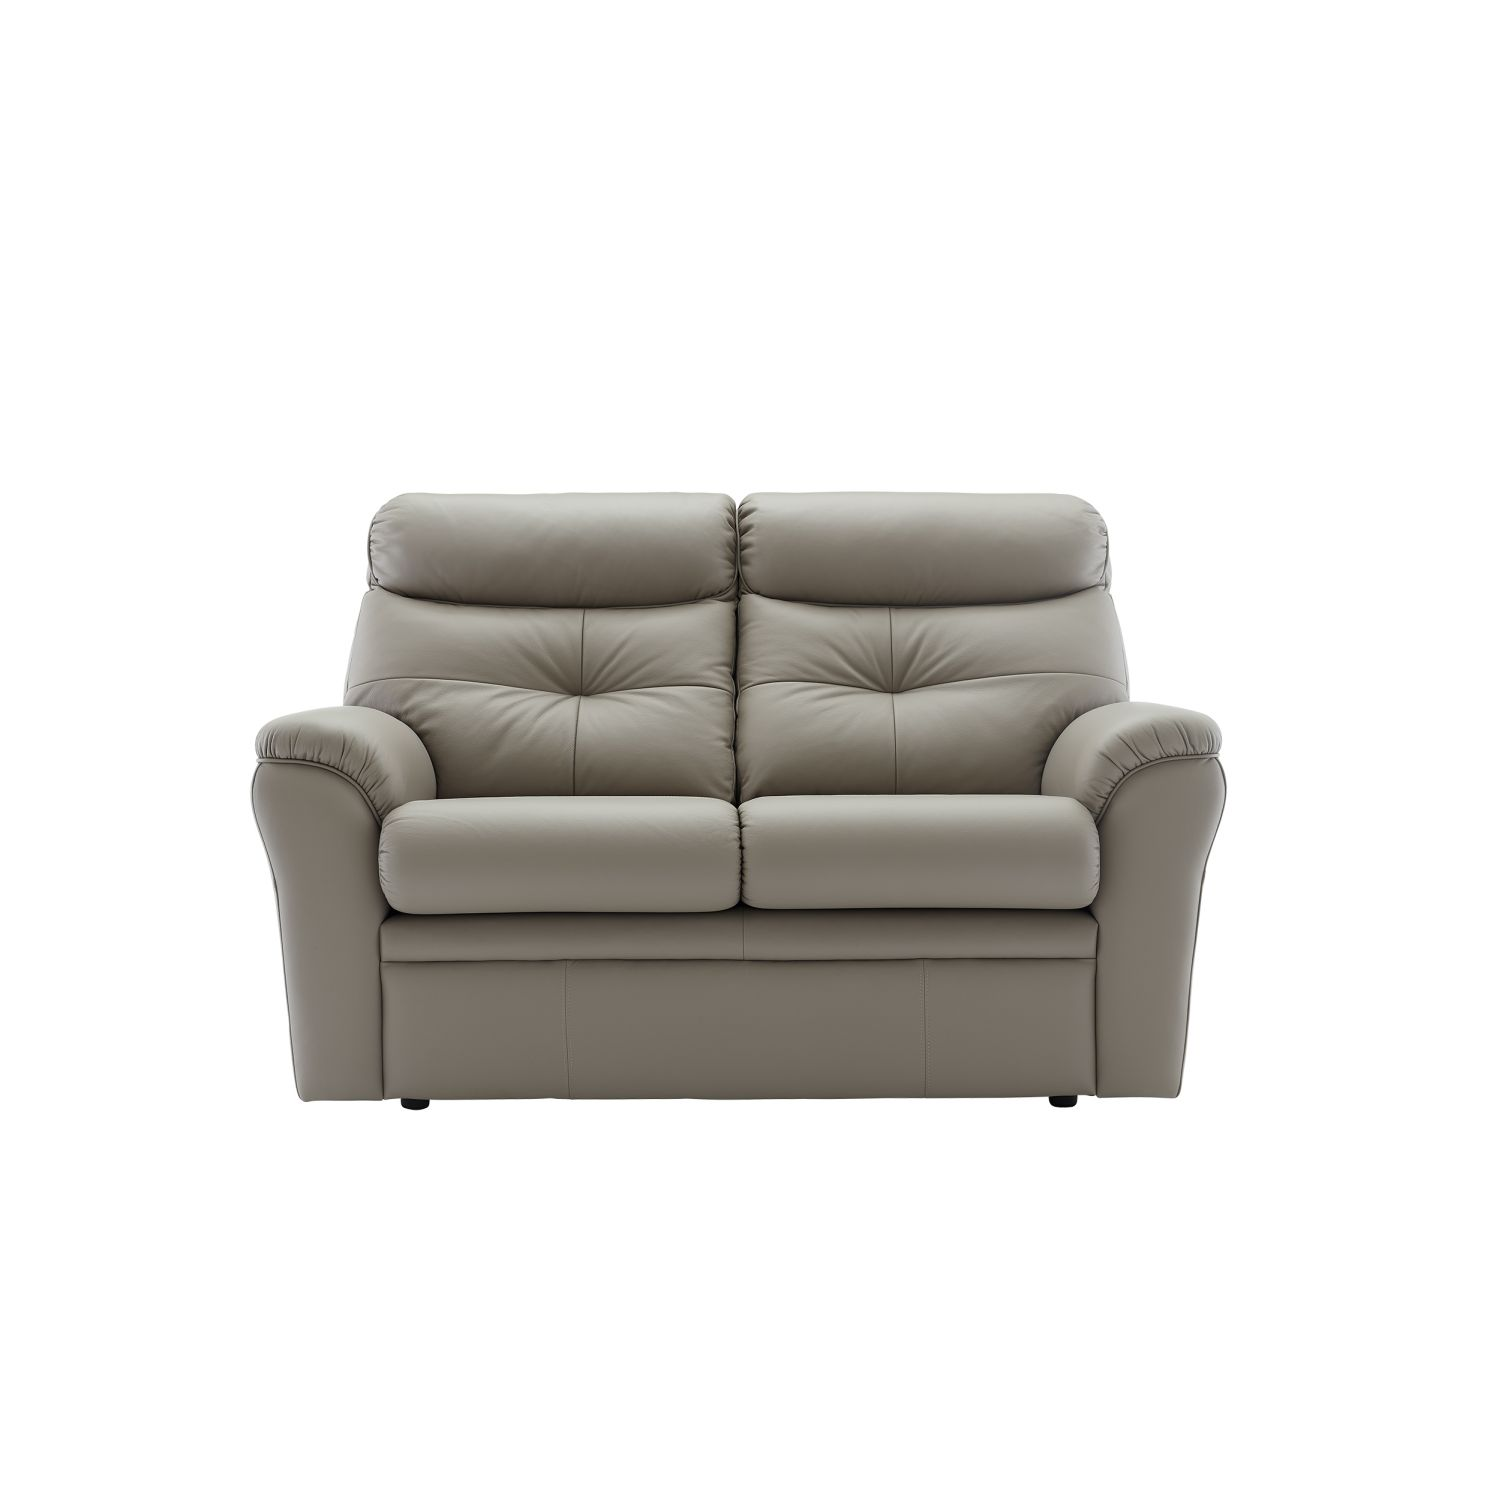 Image of G Plan Newton 2 Seater Manual Recliner Leather Sofa